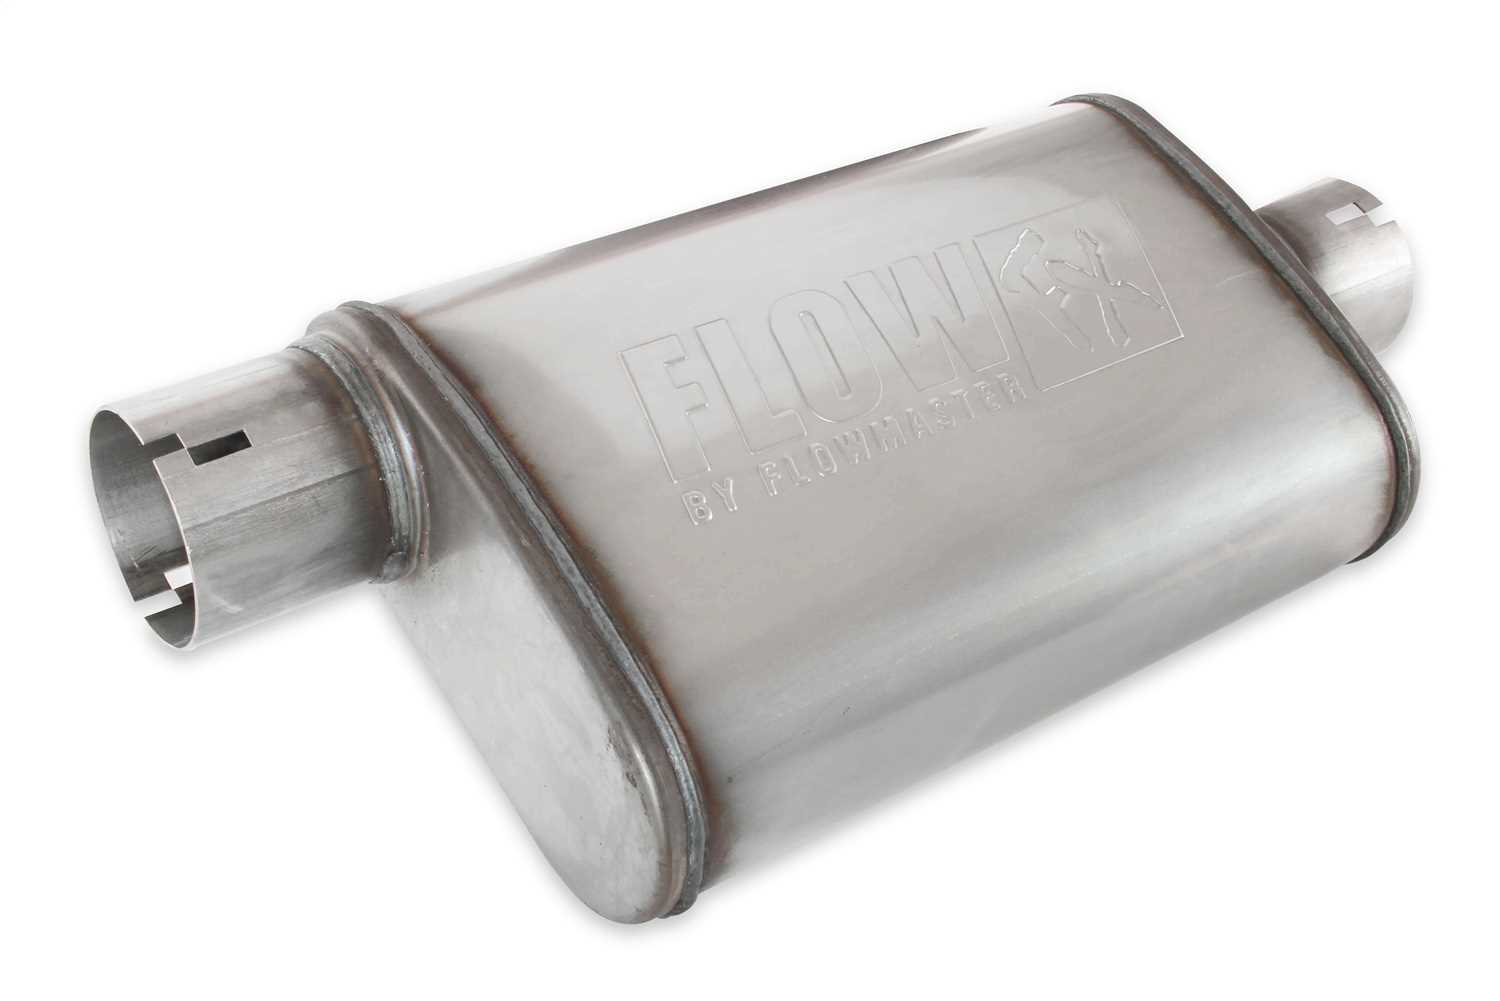 717904 Flowmaster FlowFX Cat-Back Exhaust System